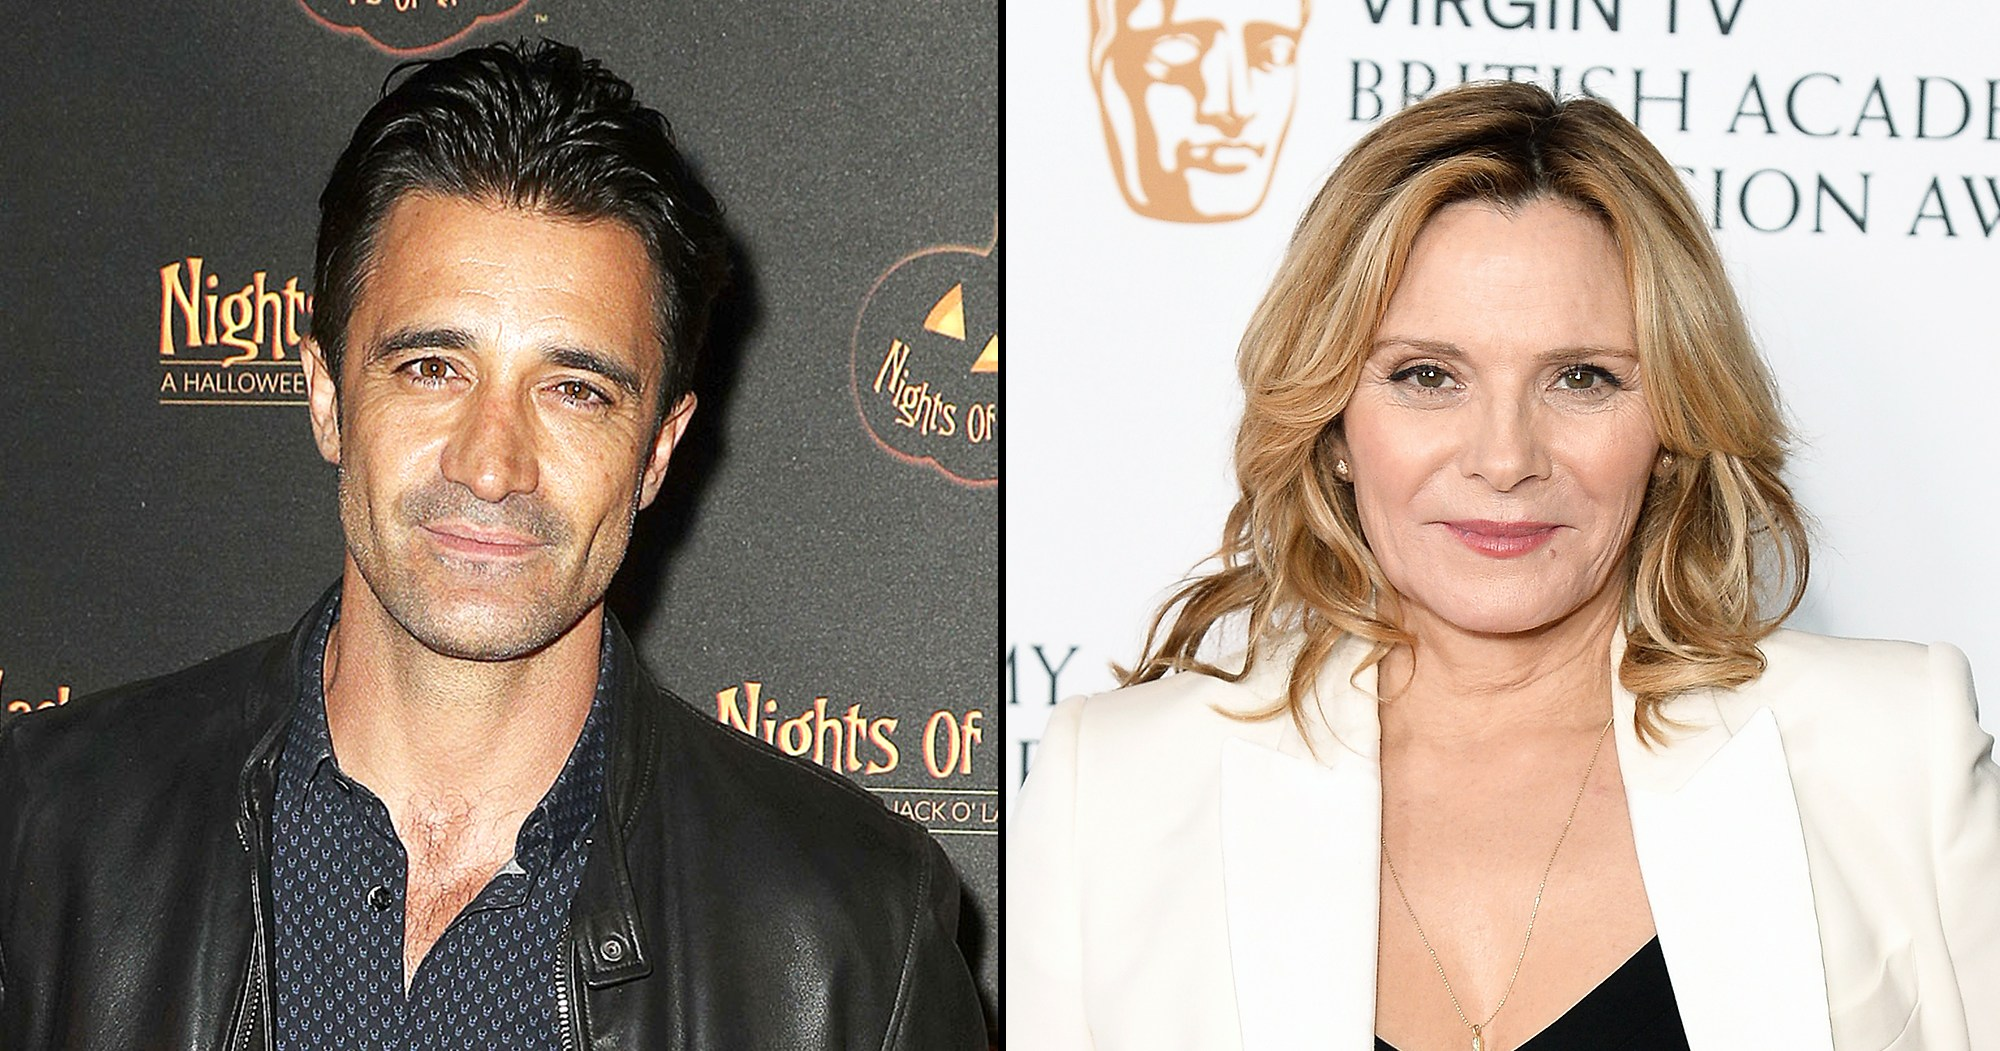 SATC's Gilles Marini: Kim Cattrall Is 'One of the Most Incredible Women'